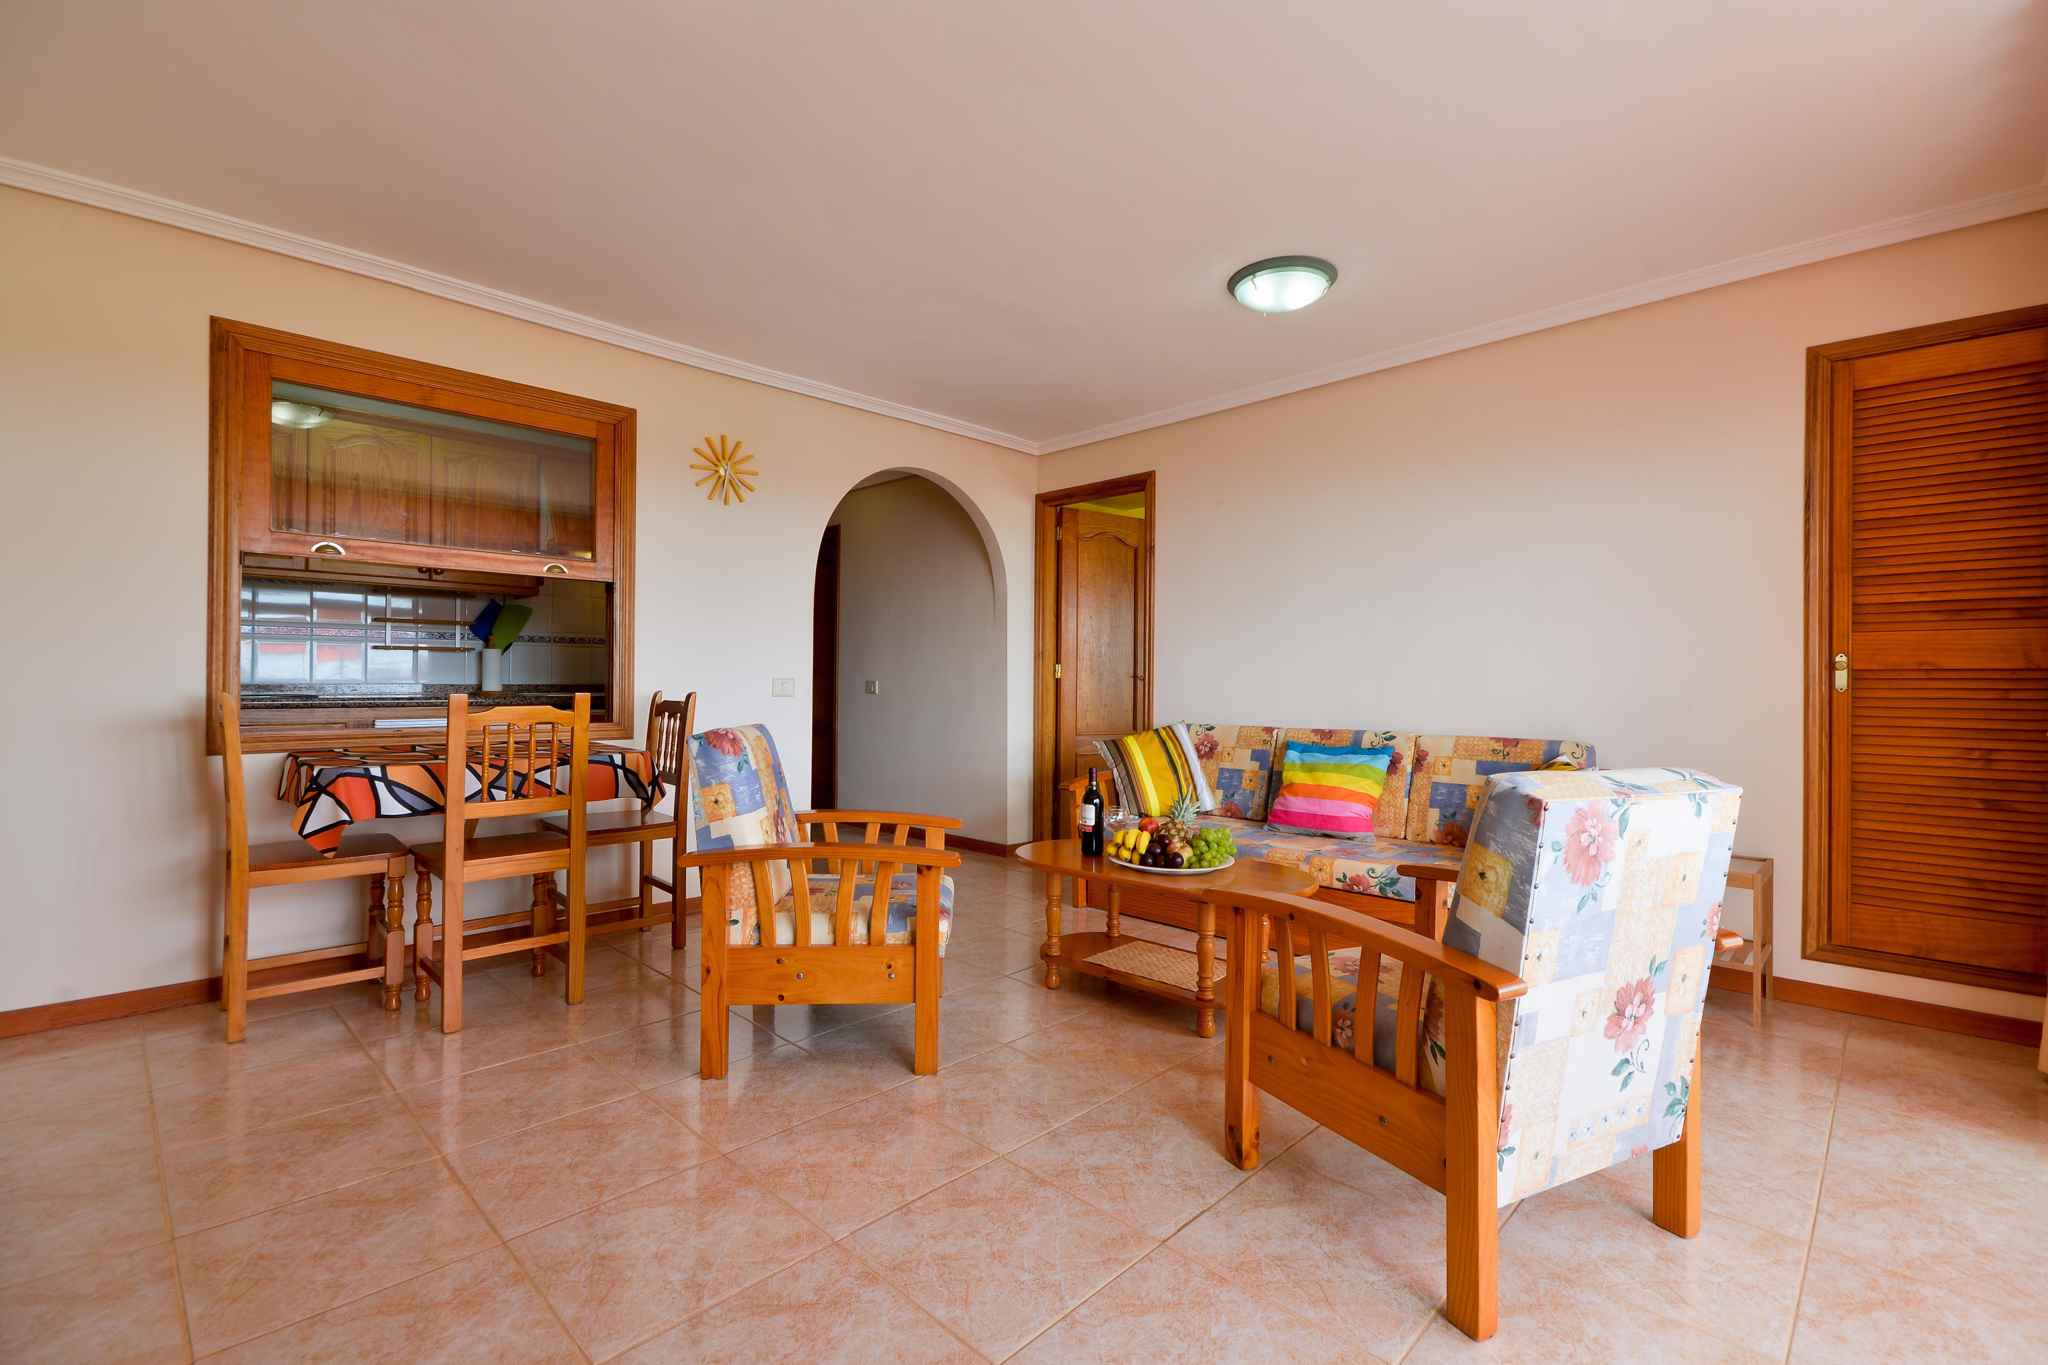 Holiday apartment mit Meerblick und Wifi in Strandnähe (1685535), Palm-Mar, Tenerife, Canary Islands, Spain, picture 23